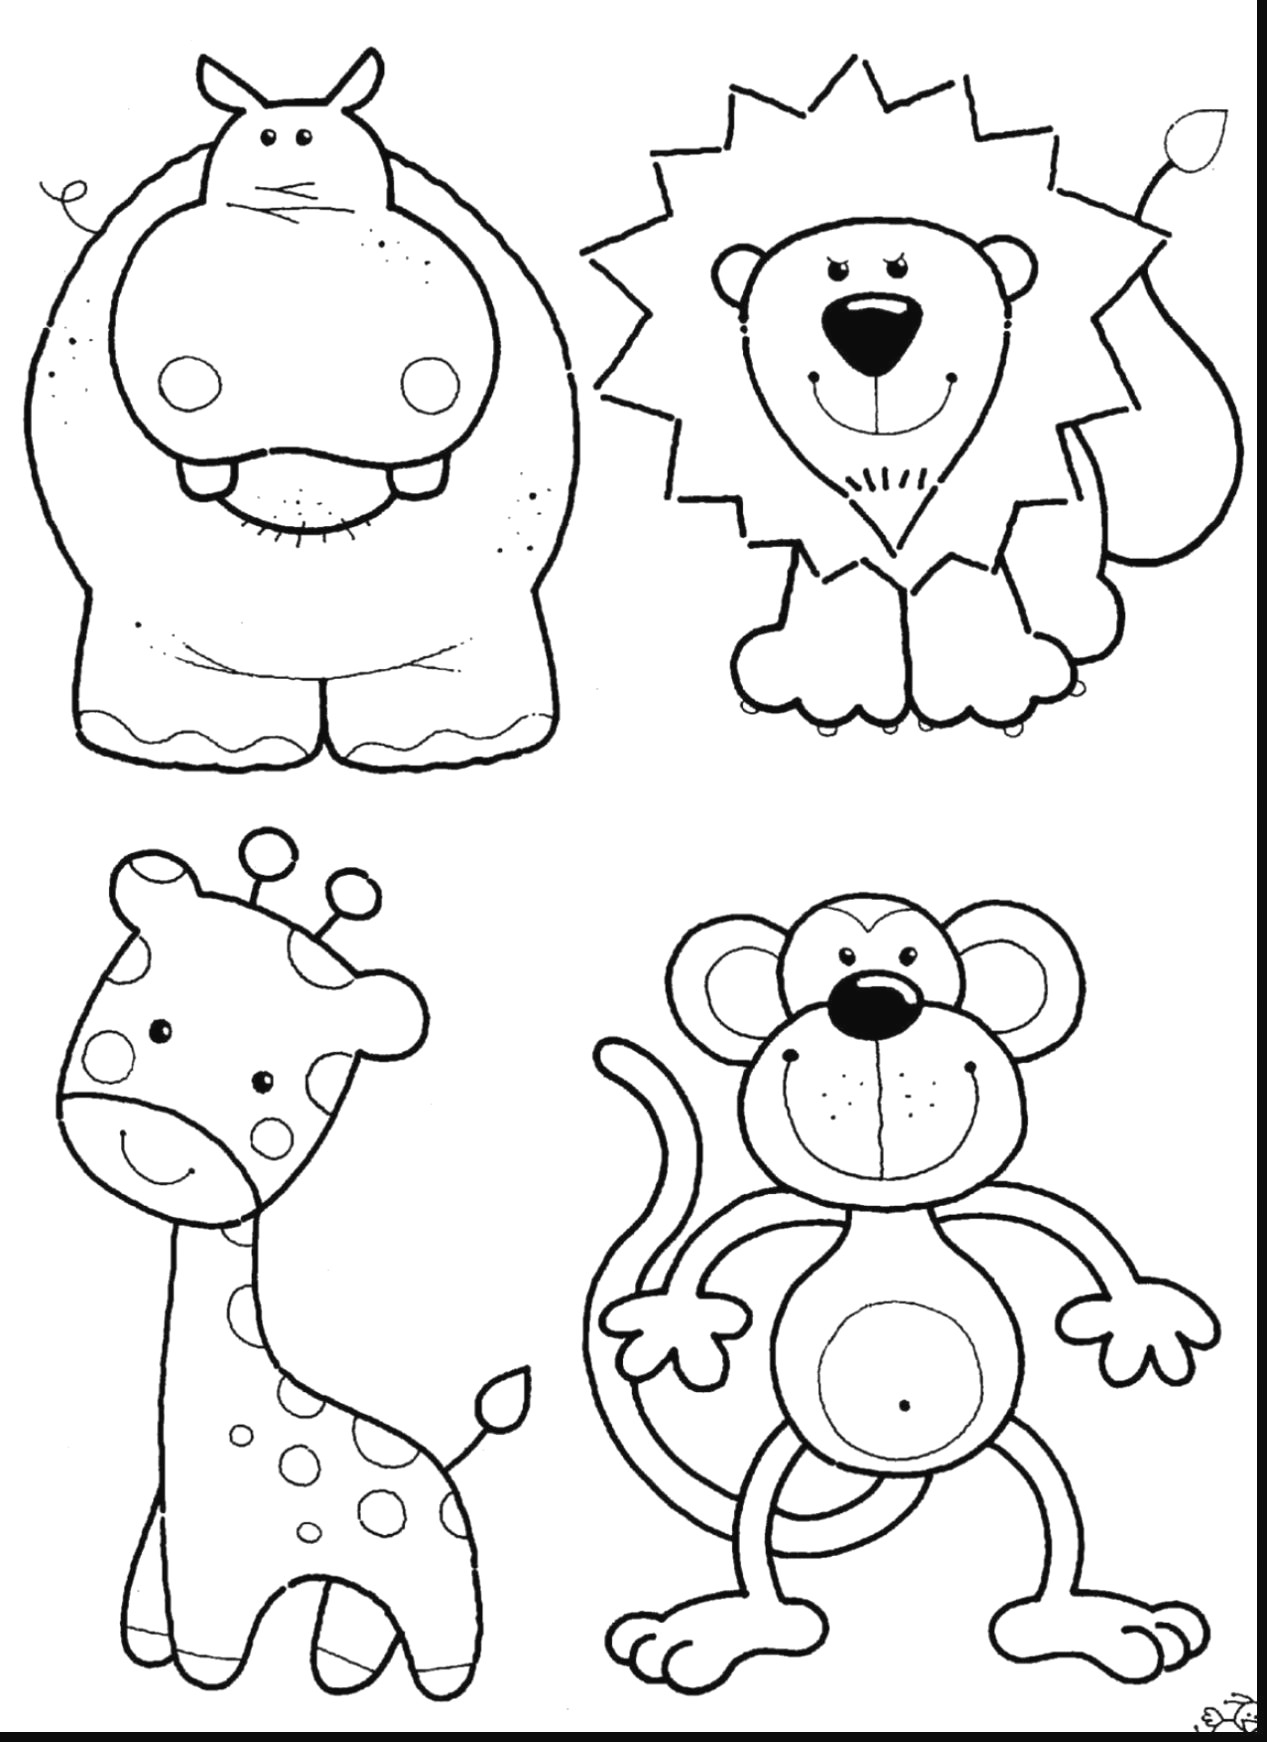 Zoo Animals Coloring Pages Zoo Animal Coloring Pages To Print Color Pages Animals Coloring